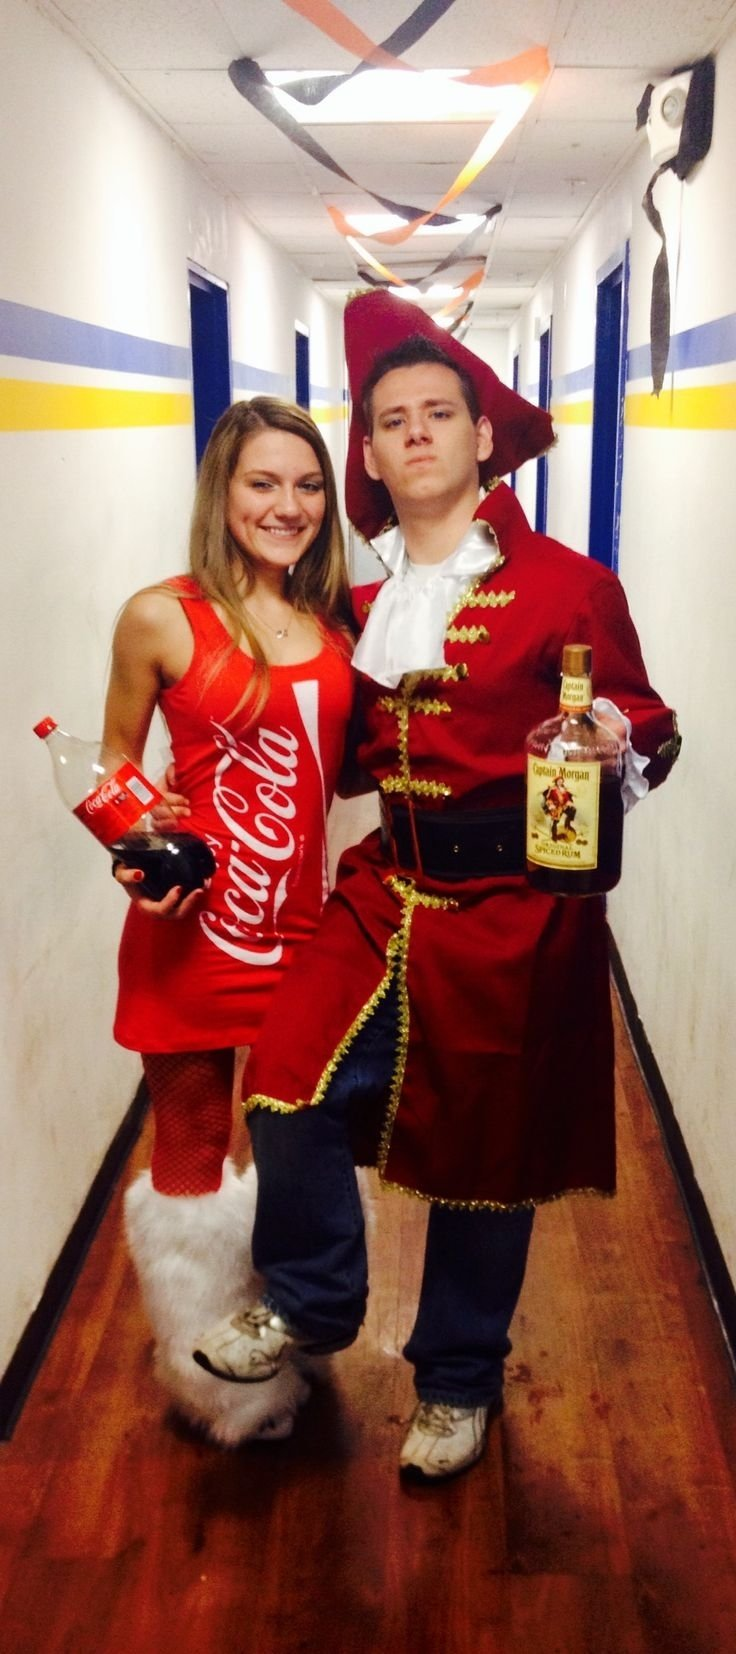 10 attractive clever halloween costume ideas couples 2019